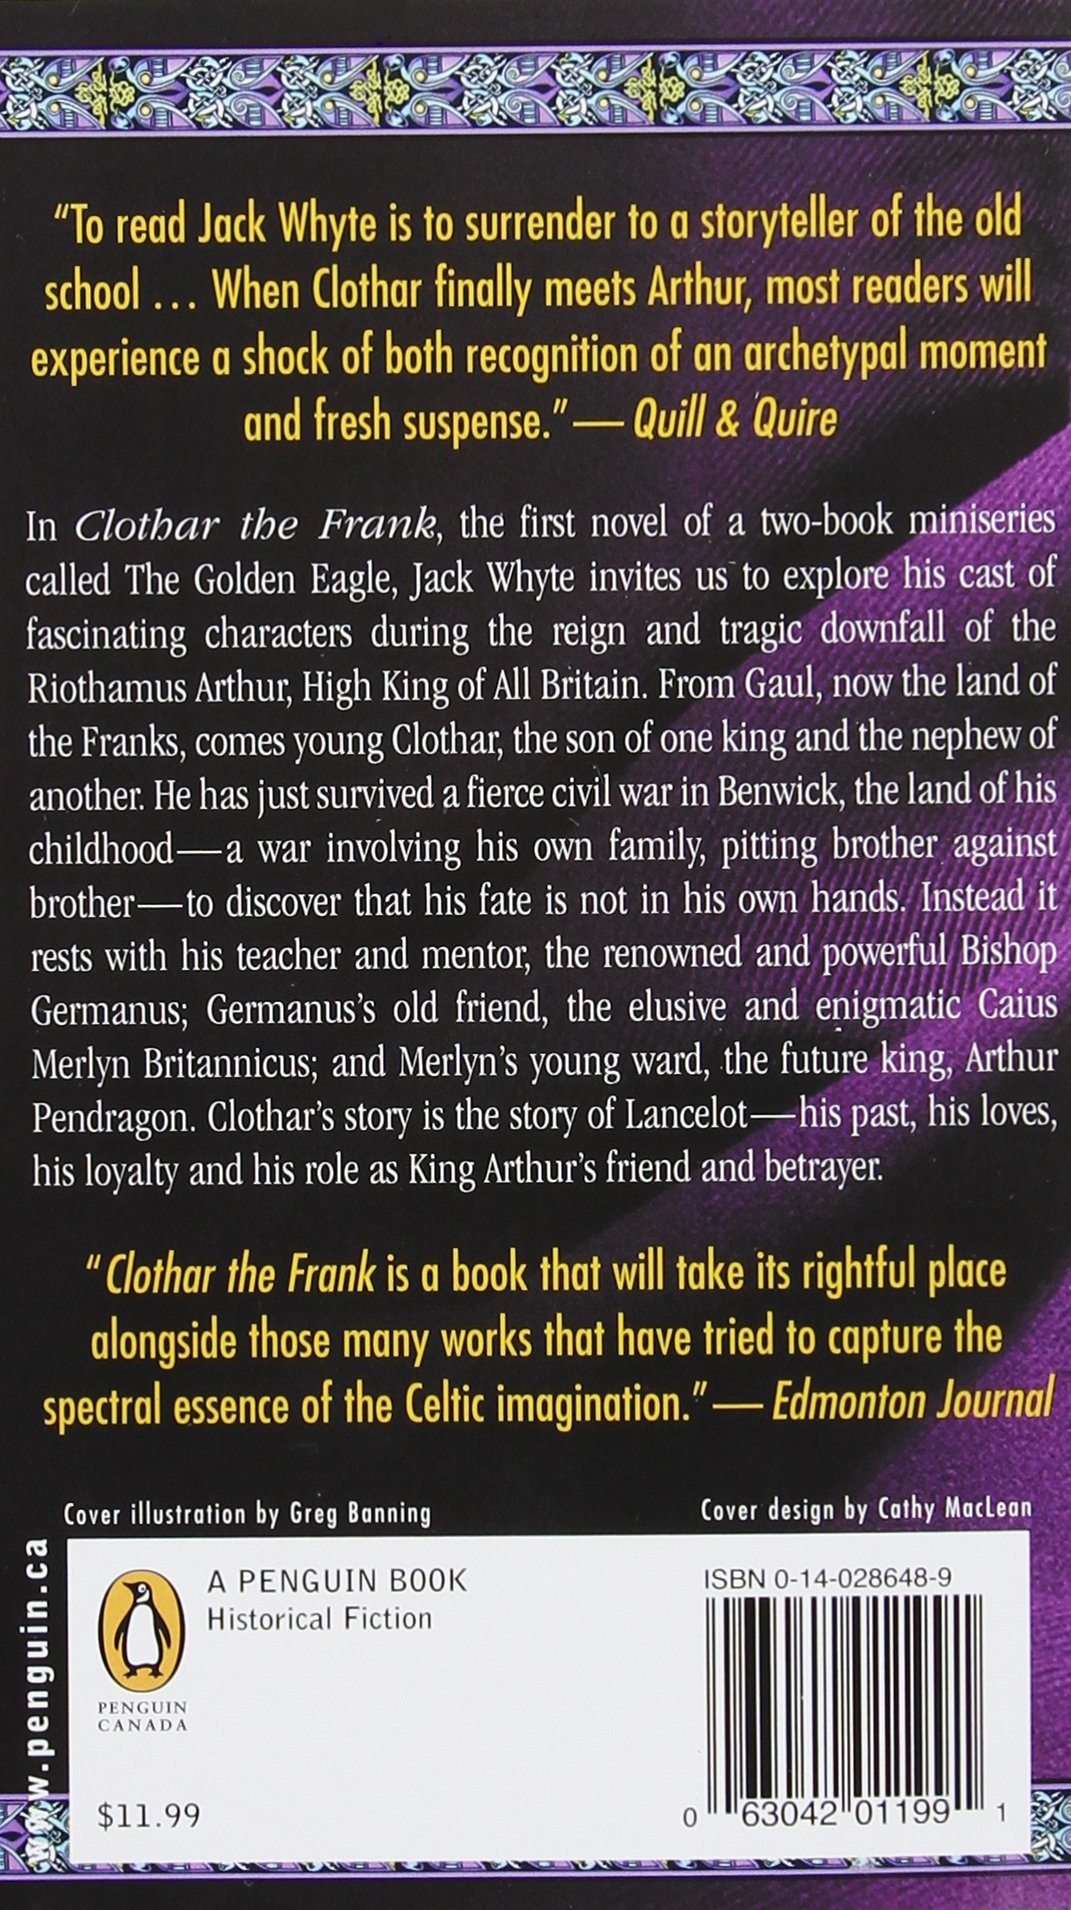 Clothar The Frank (the Camulod Chronicles, Book 8): Jack Whyte:  9780140286489: Amazon: Books